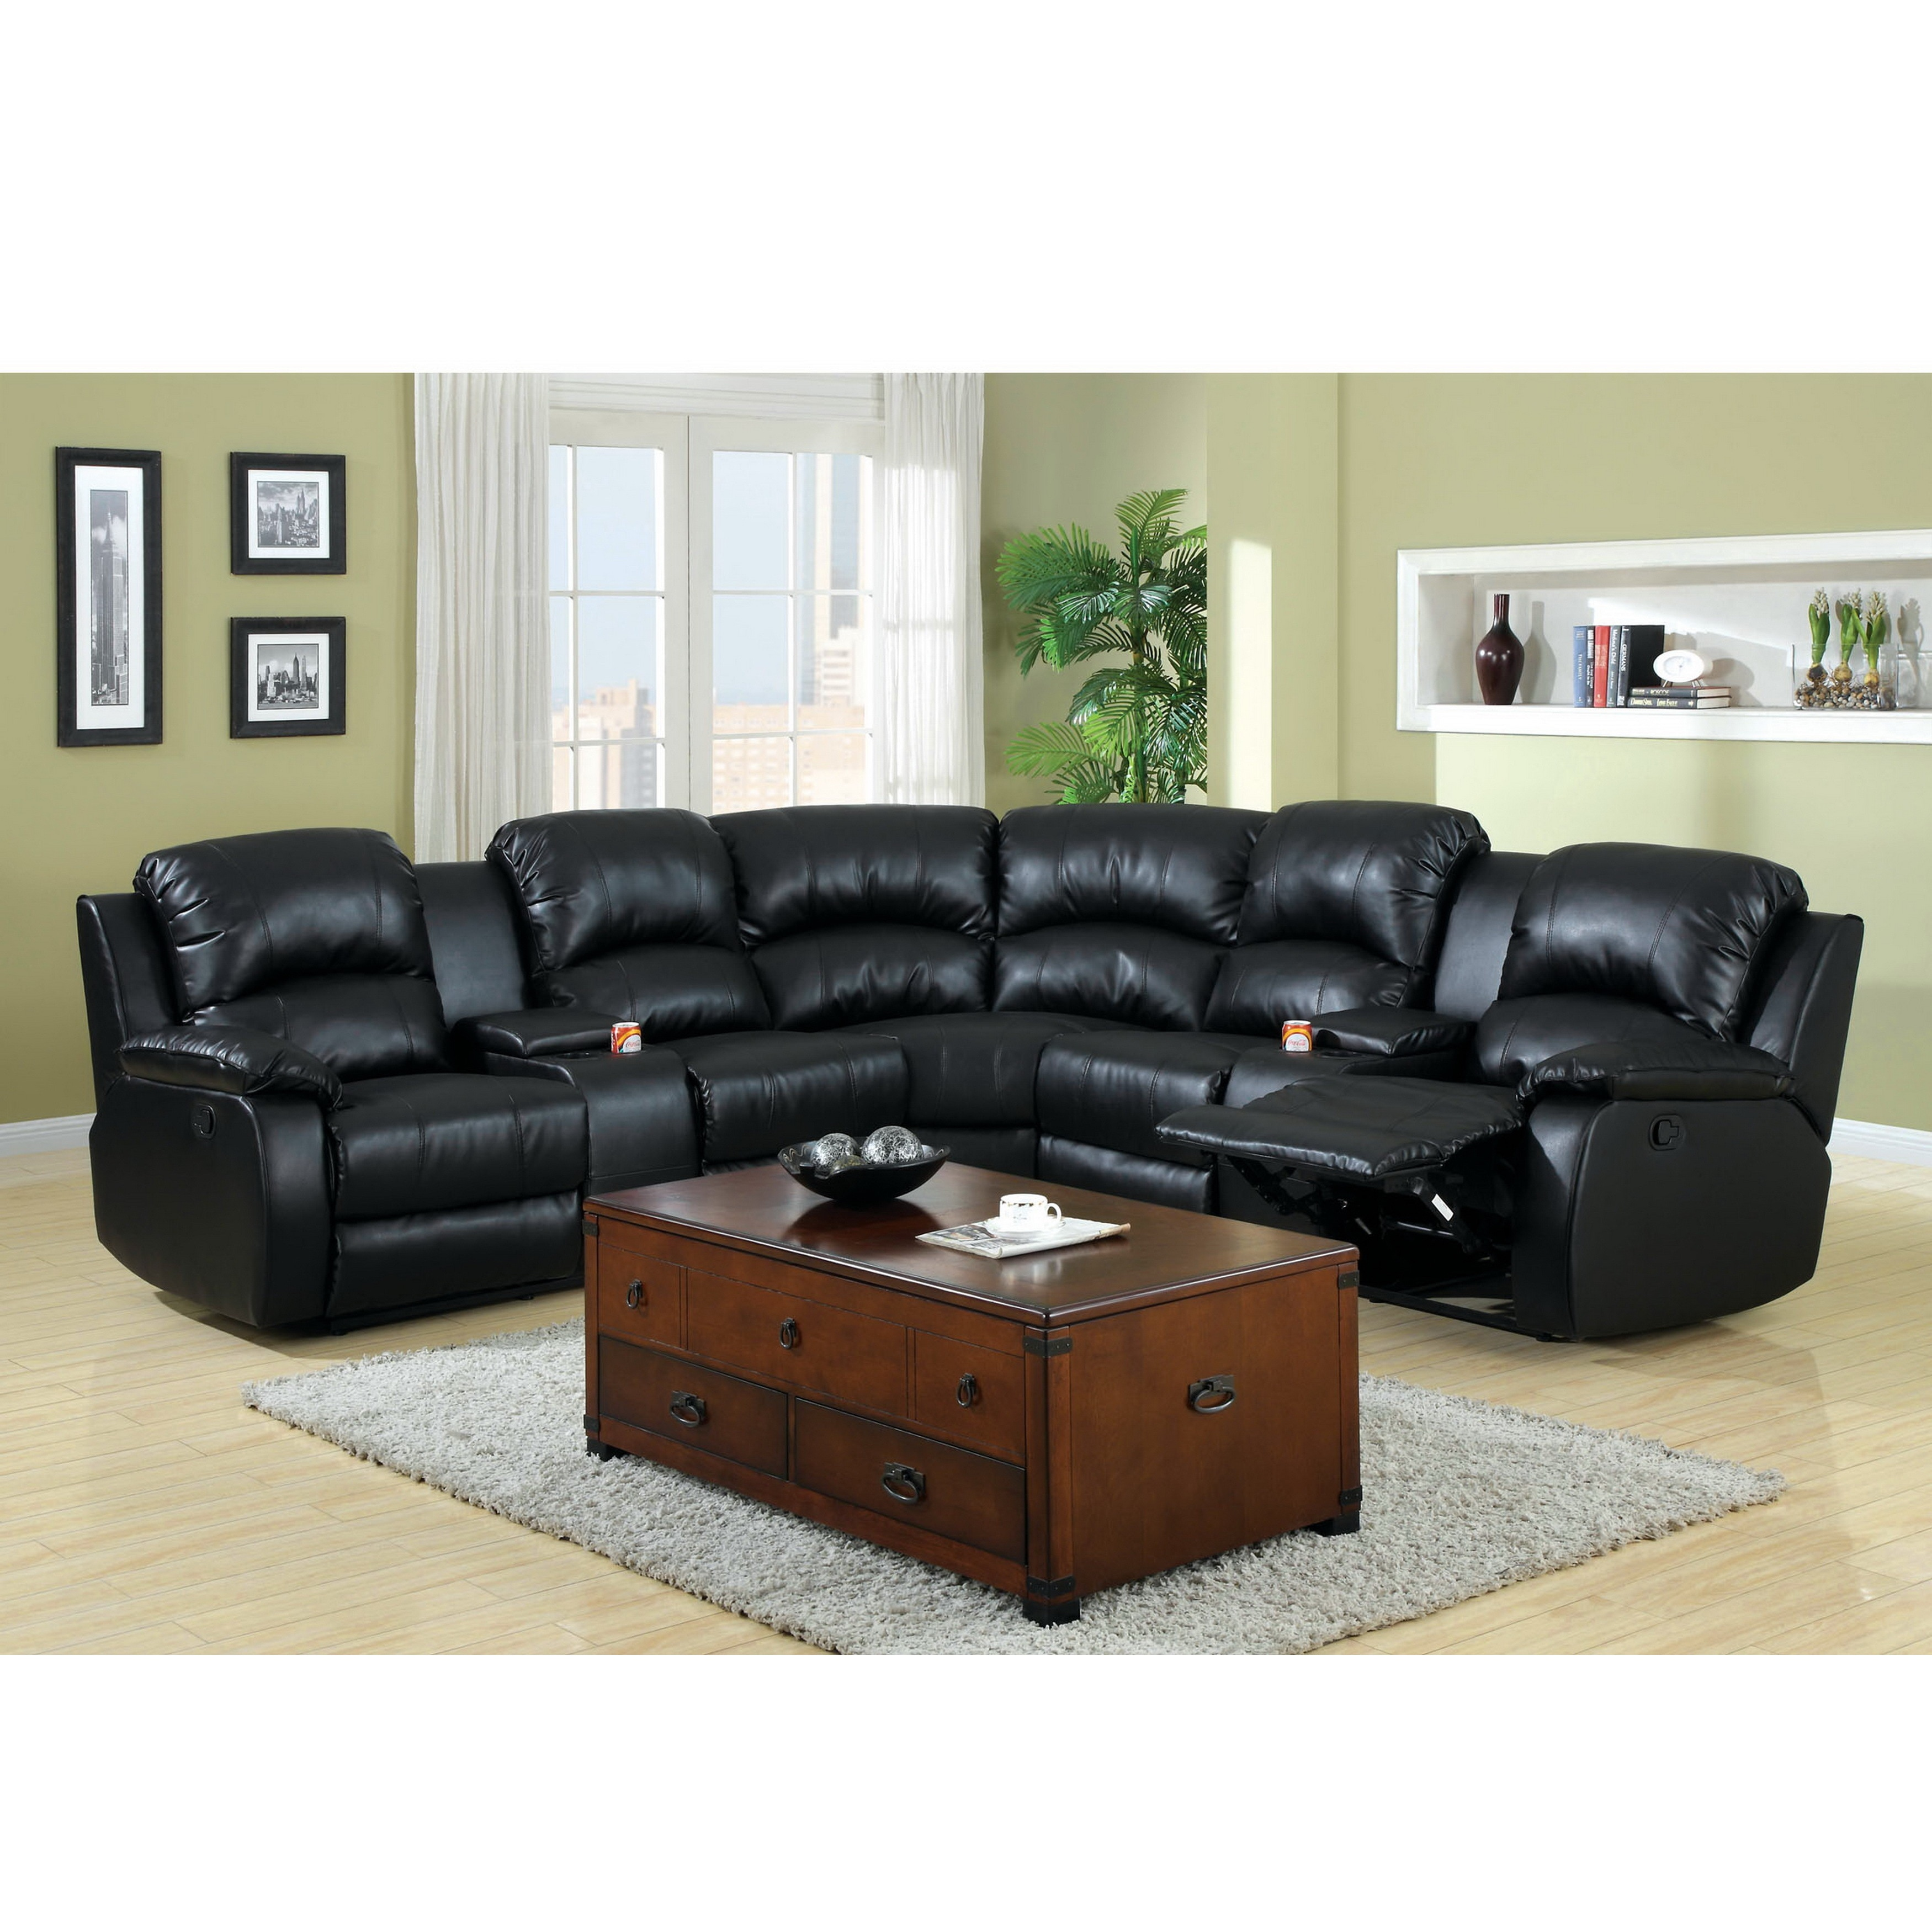 Furniture of America Amerlie Black Leather Reclining Sect...